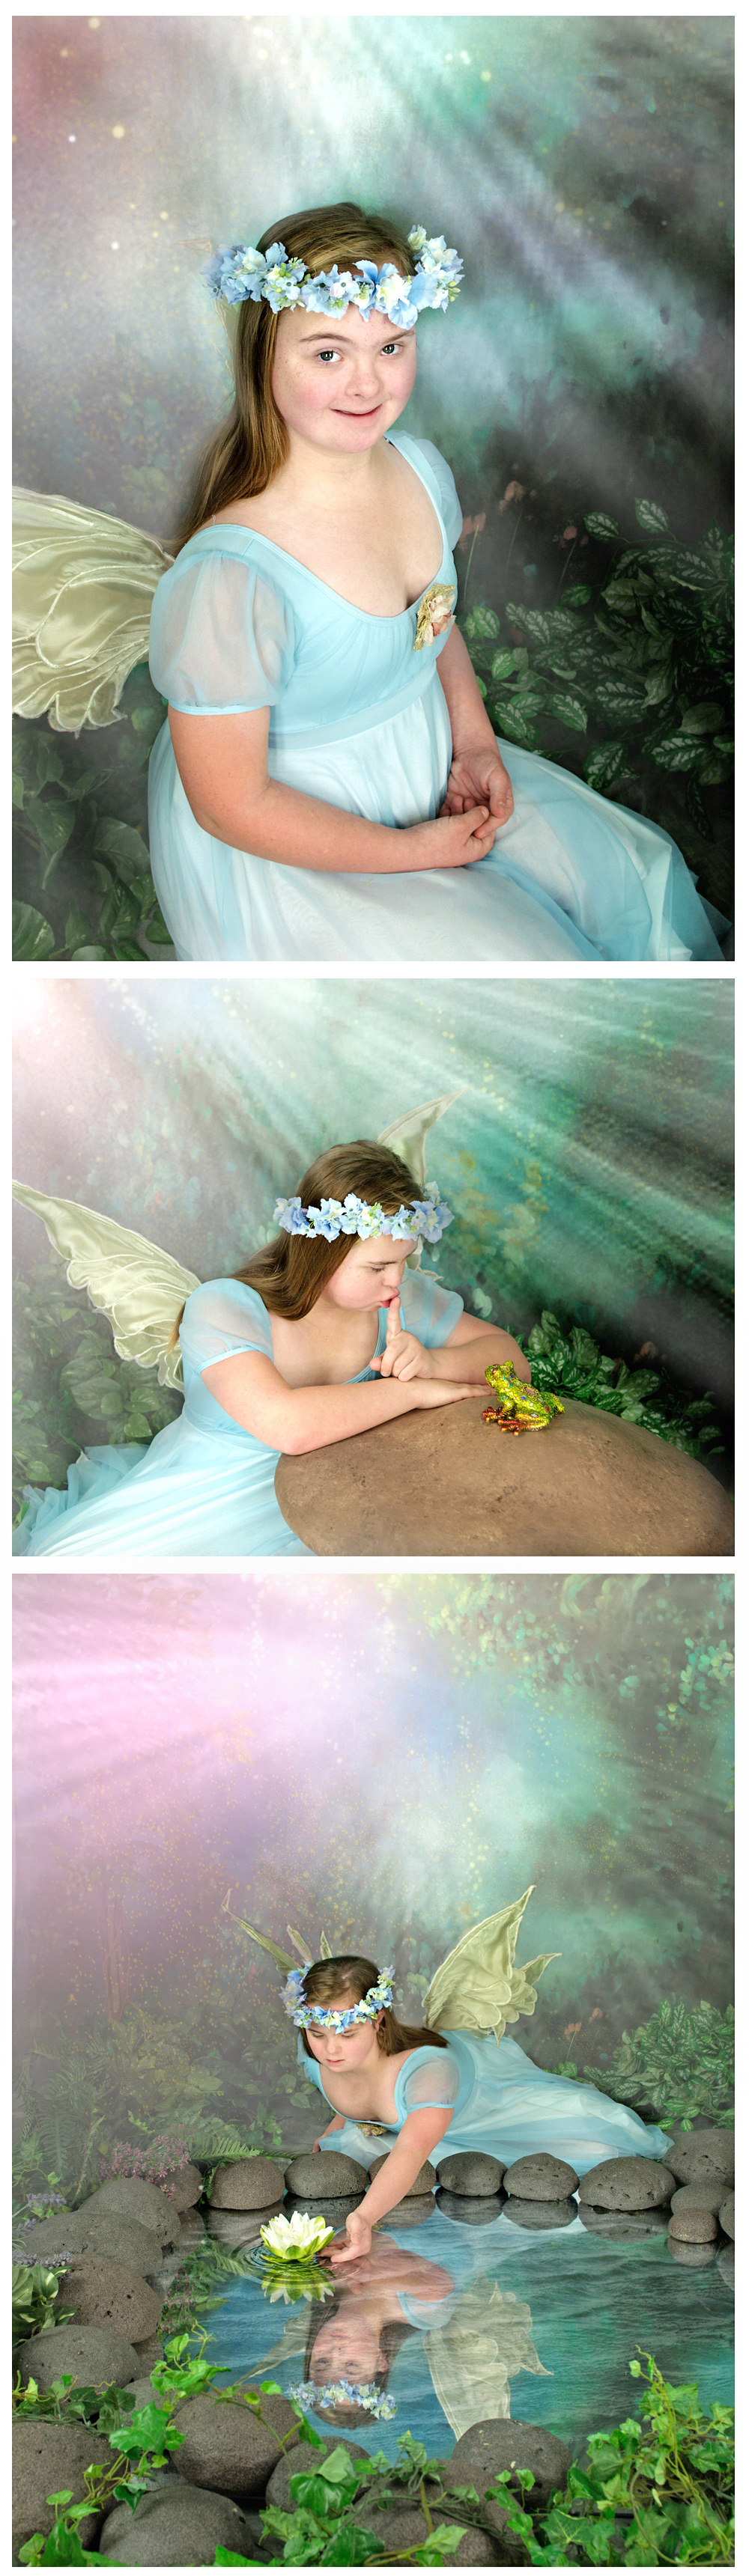 fairy-with-a-graceful-heart_01.jpg